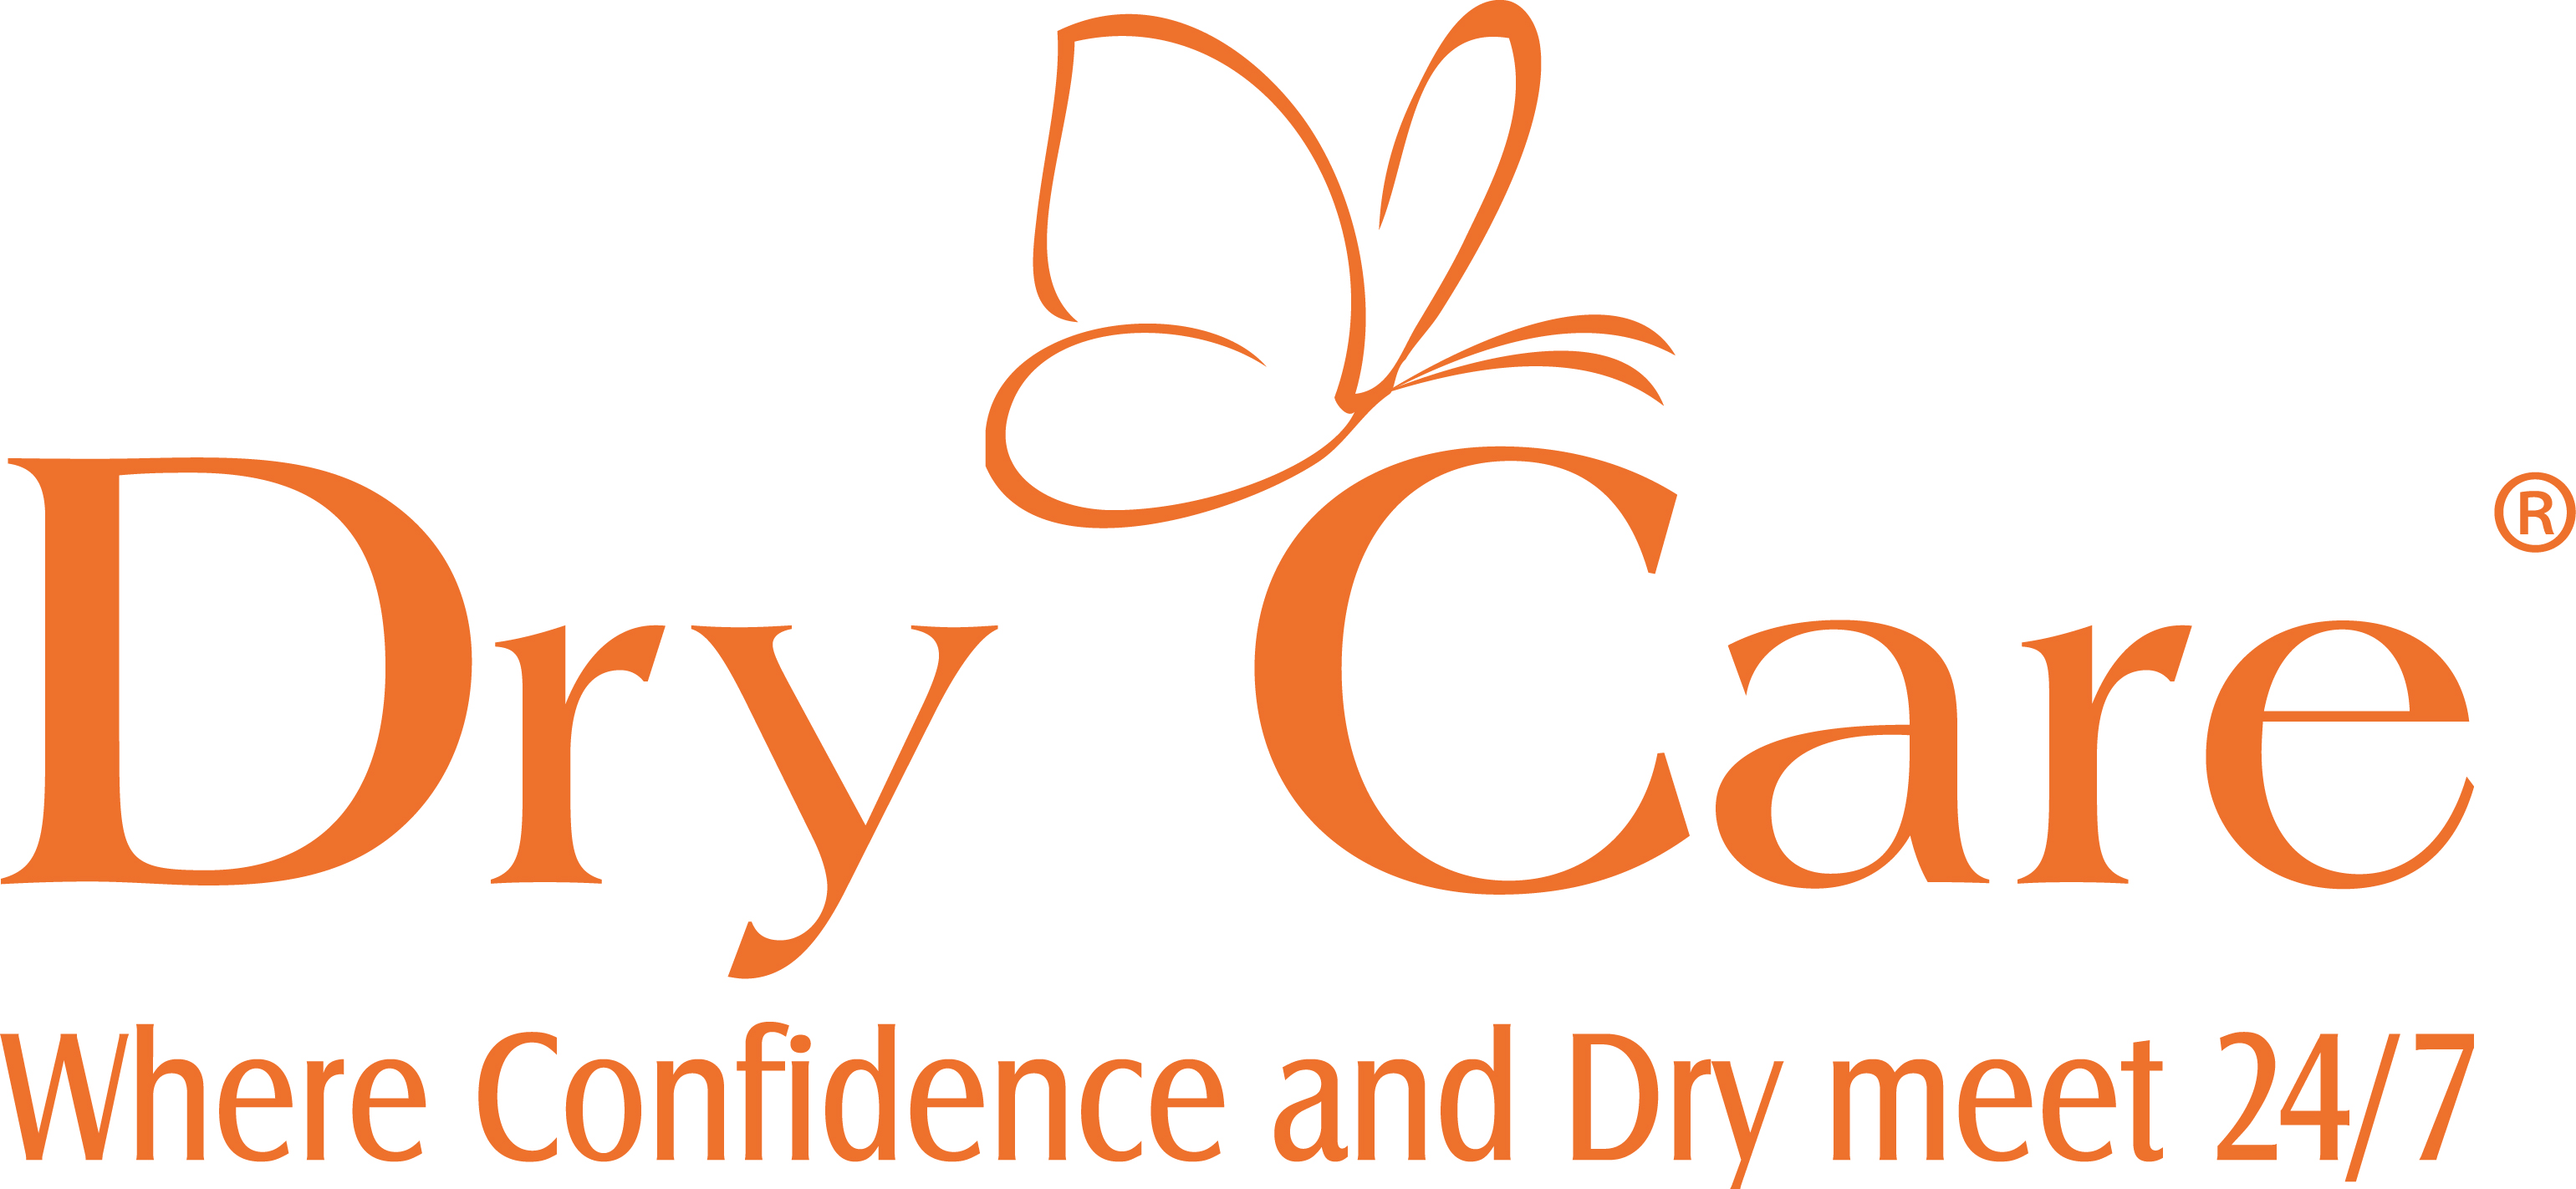 Buy Dry Care 24 7 Confi Dry Incontinence Products in Canada from AgeComfort.jpg